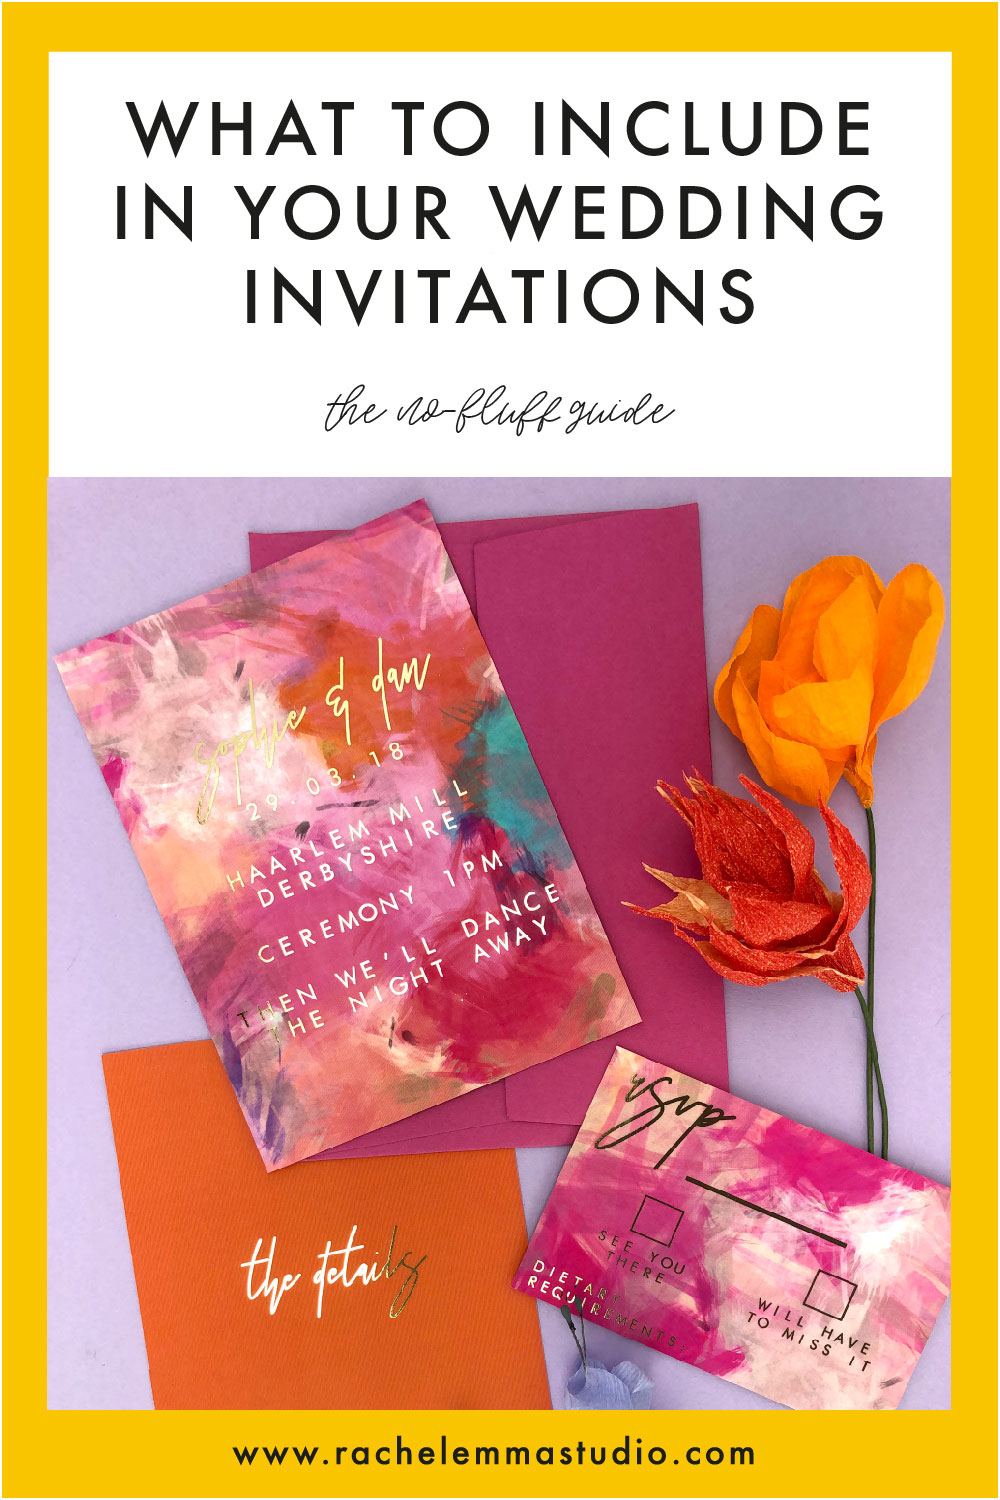 what to inlcude in your wedding invitations_Artboard 09.jpg